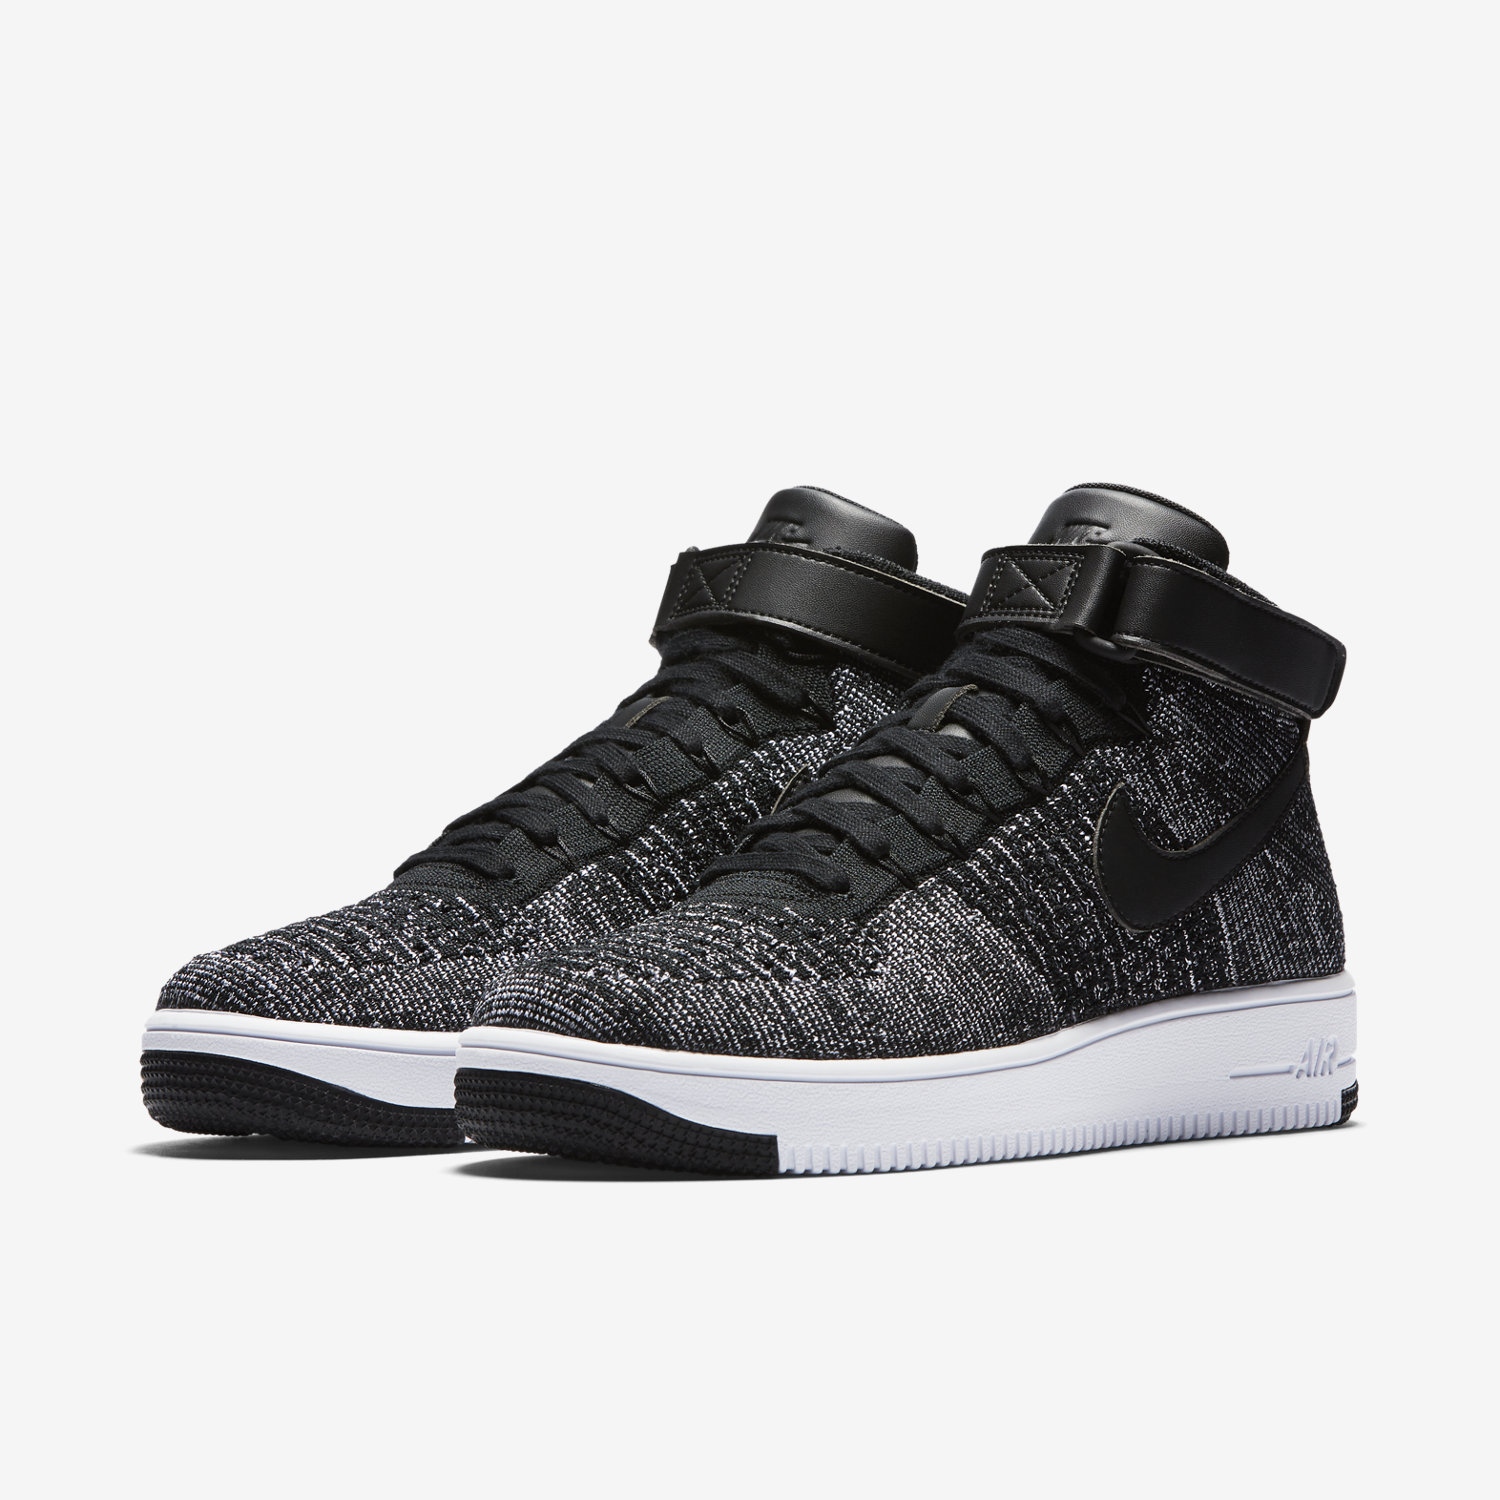 nike air force 1 flyknit progress texas. Black Bedroom Furniture Sets. Home Design Ideas